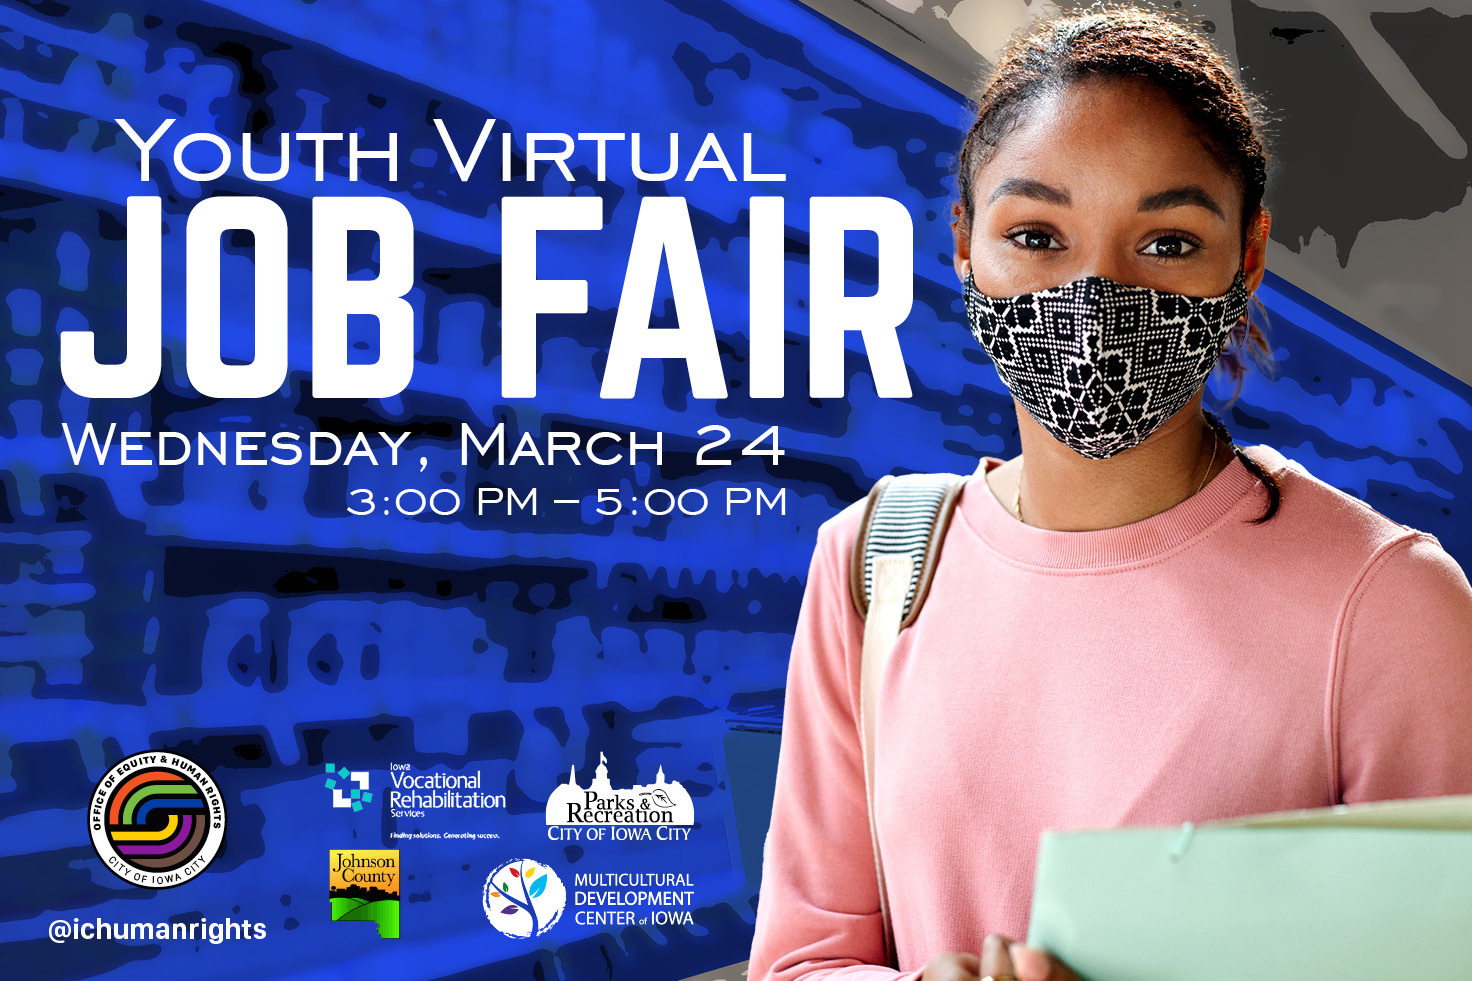 A graphic promoting a youth virtual job fair on March 24, 2021.